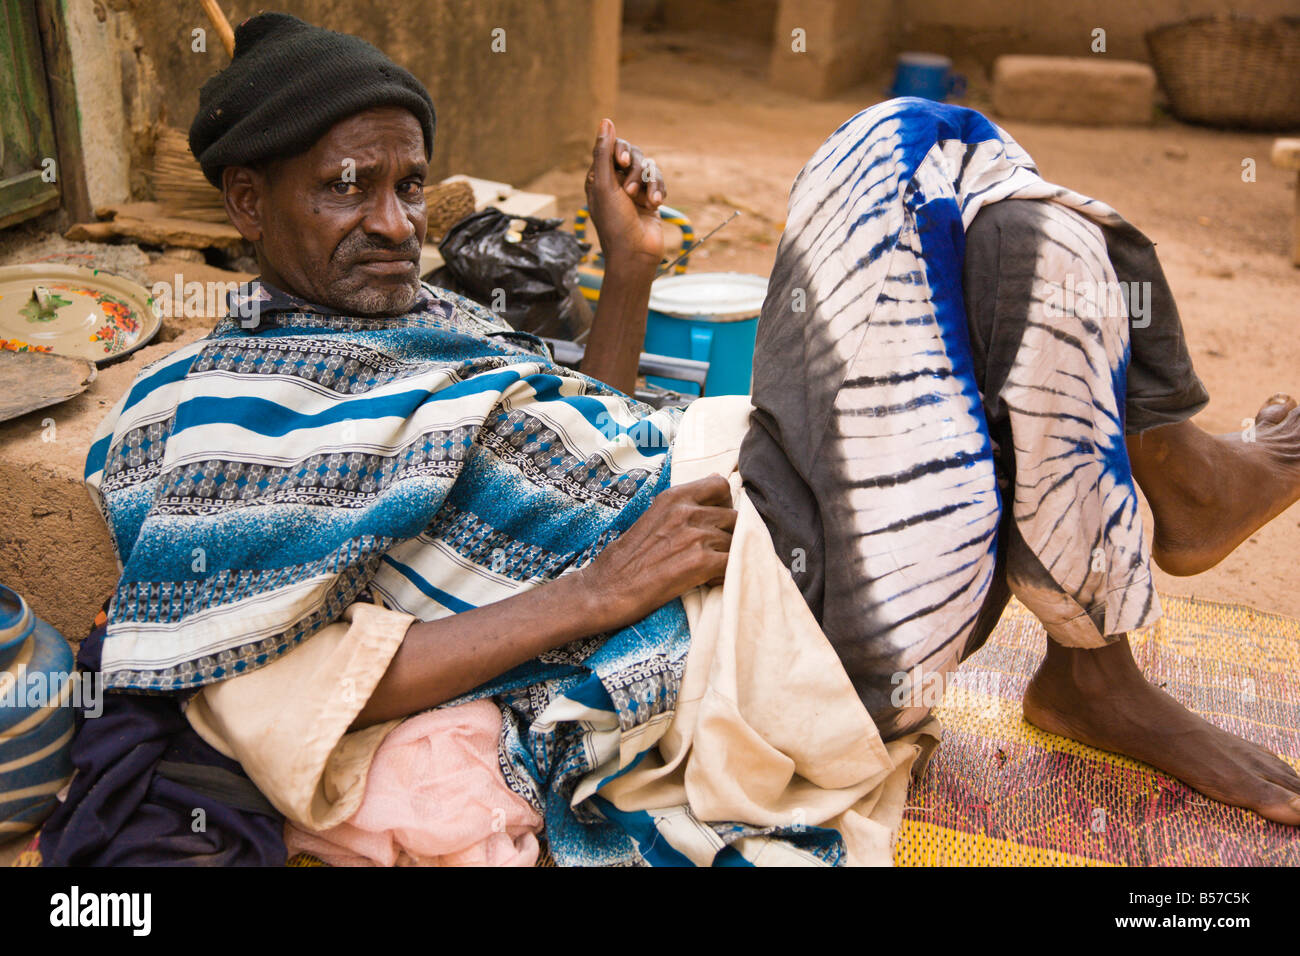 An elderly Fulani man relaxes against the steps of his house in Ouagadougou, Burkina Faso - Stock Image